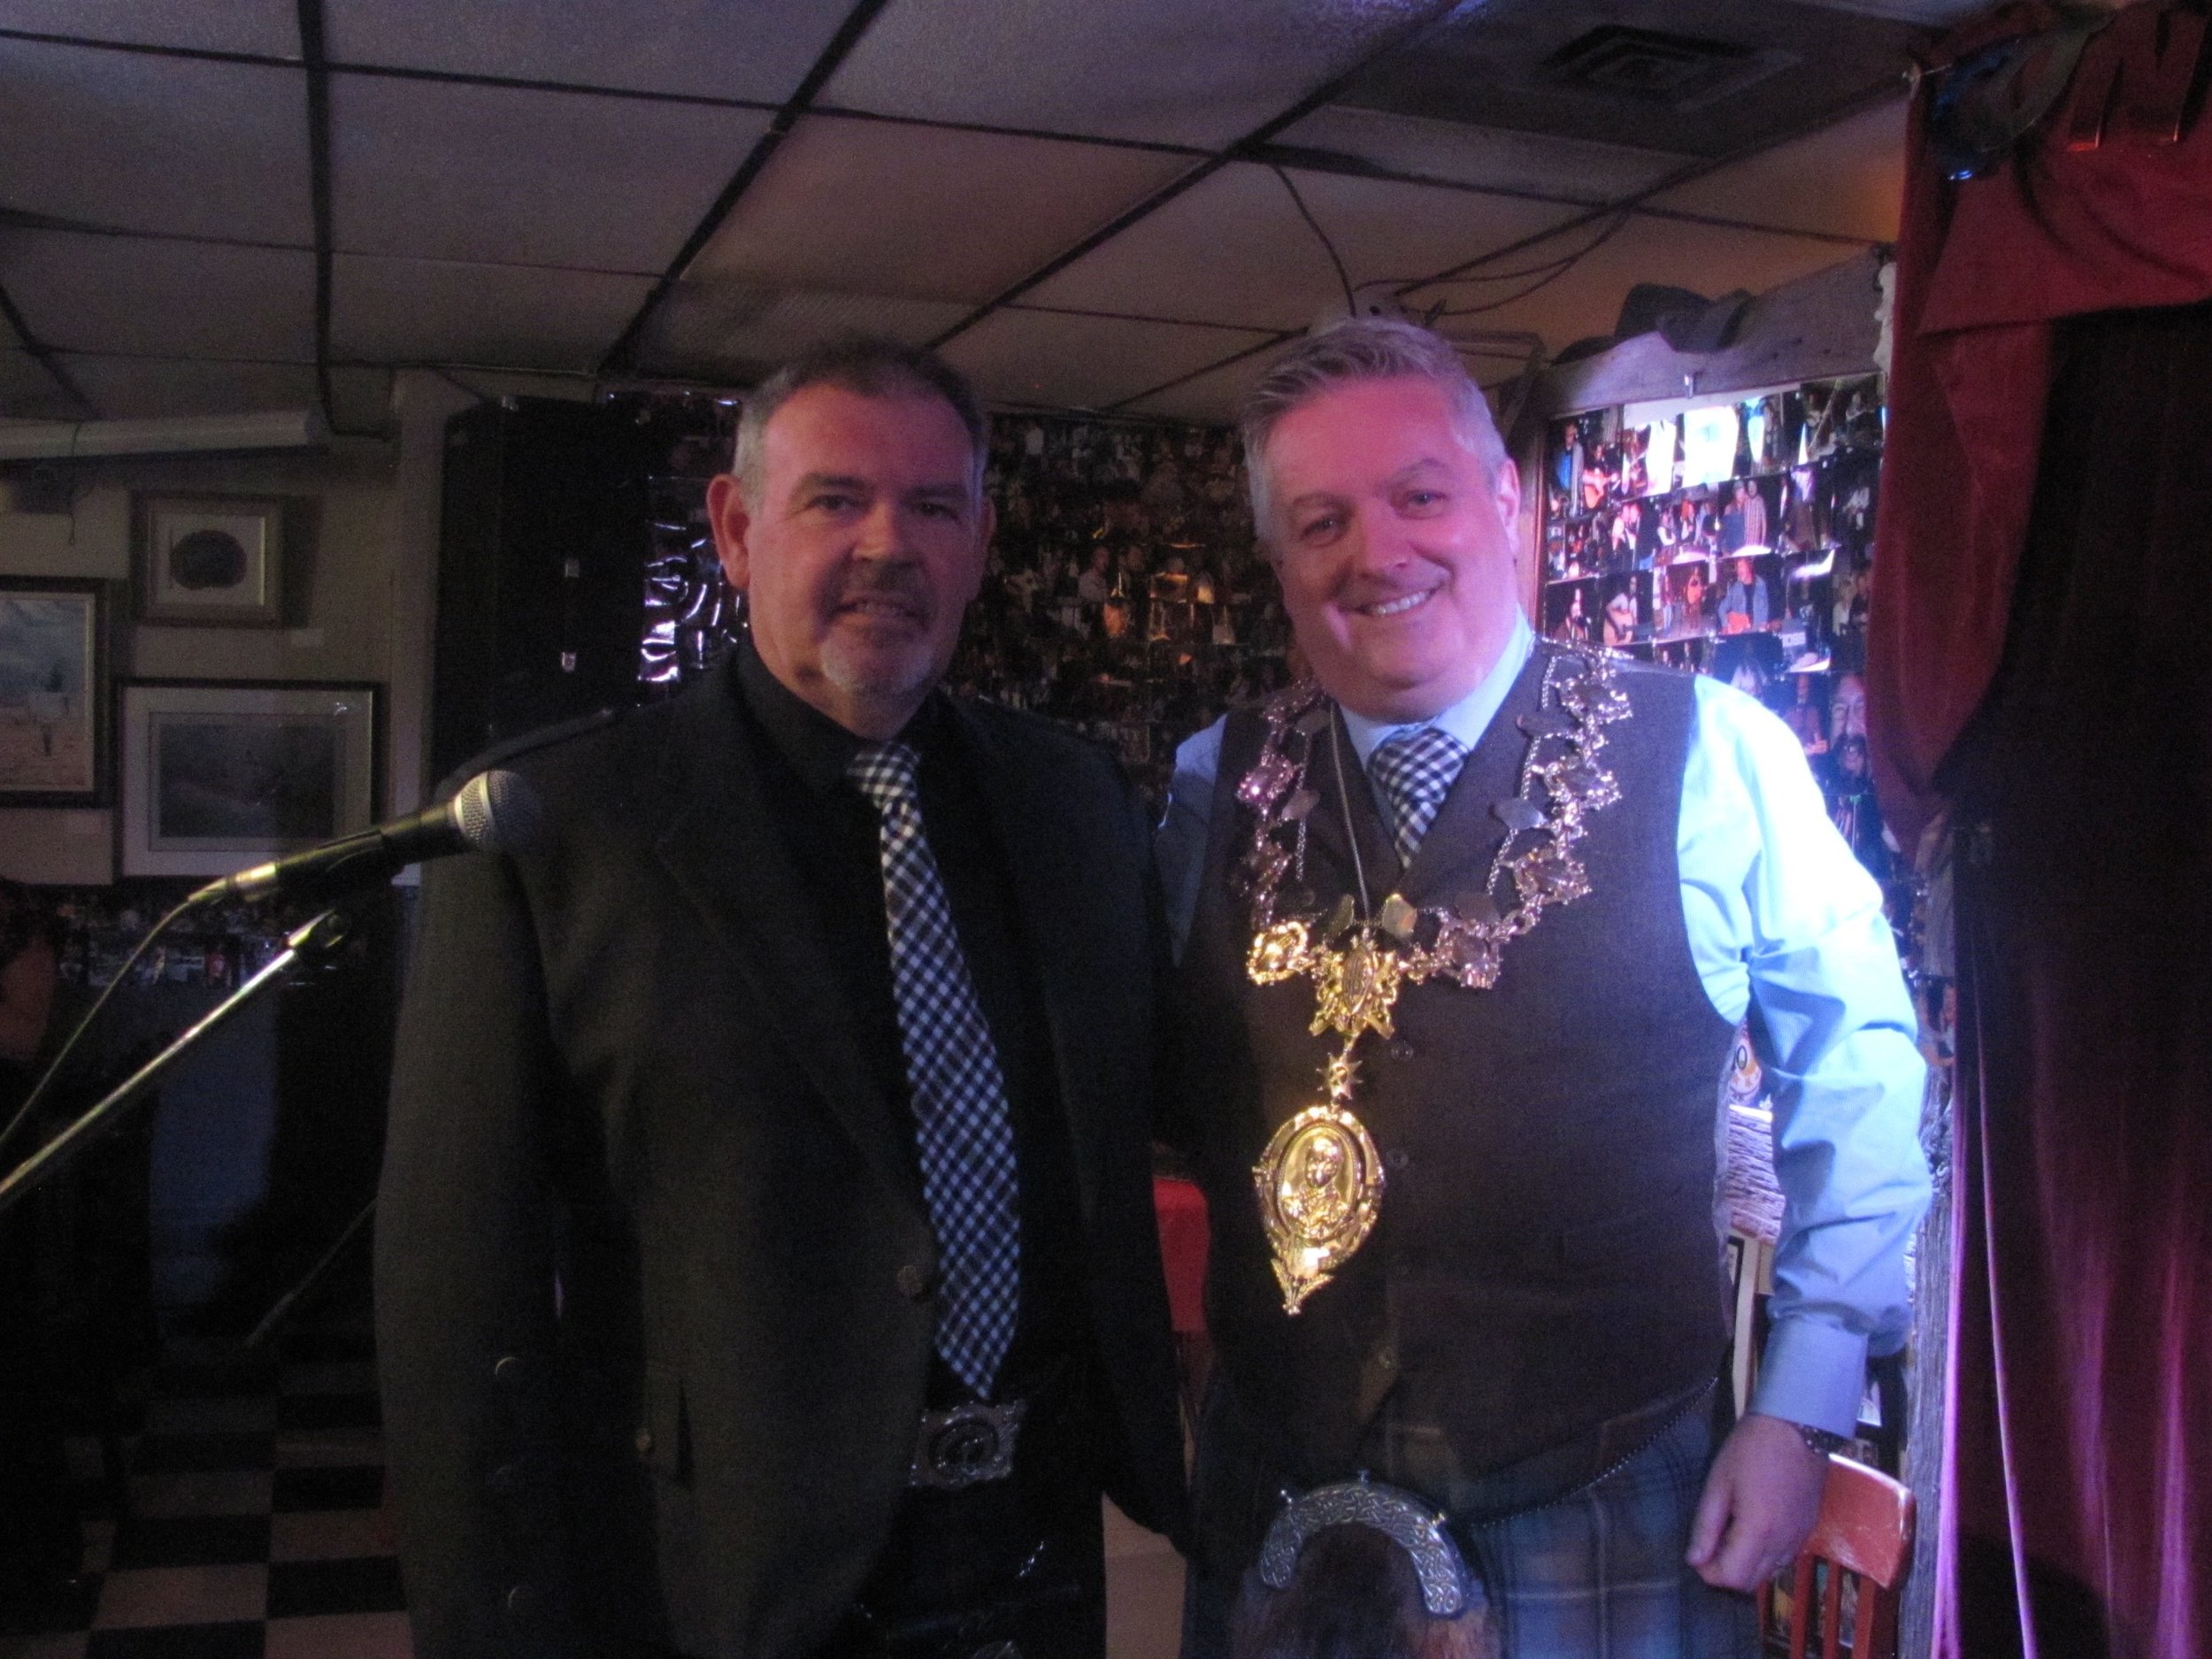 Special Guest of Honour, all the way from Scotland, President of the Robert Burns World Federation,  Bobby Kane  (right), with  Featurette Artist  and satirical poet,  Ronnie O'Byrne  (left), Director of the Canadian faction of The Robert Burns World Federation.